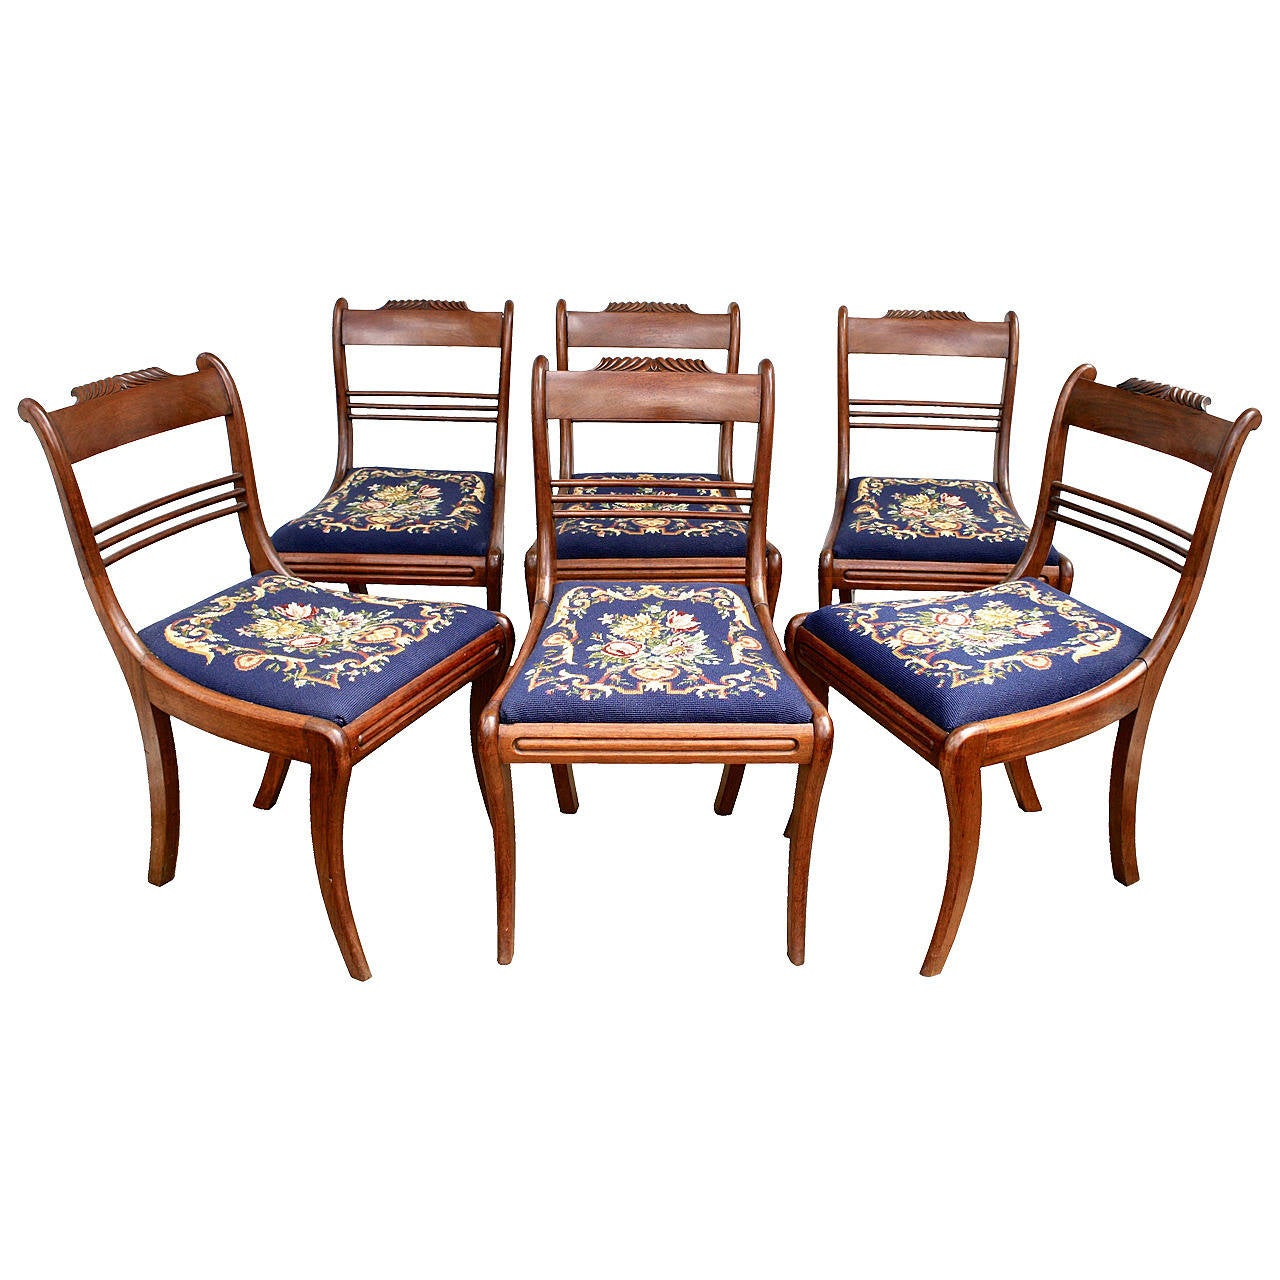 SIX Philadelphia Klismos Dining Chairs For Sale